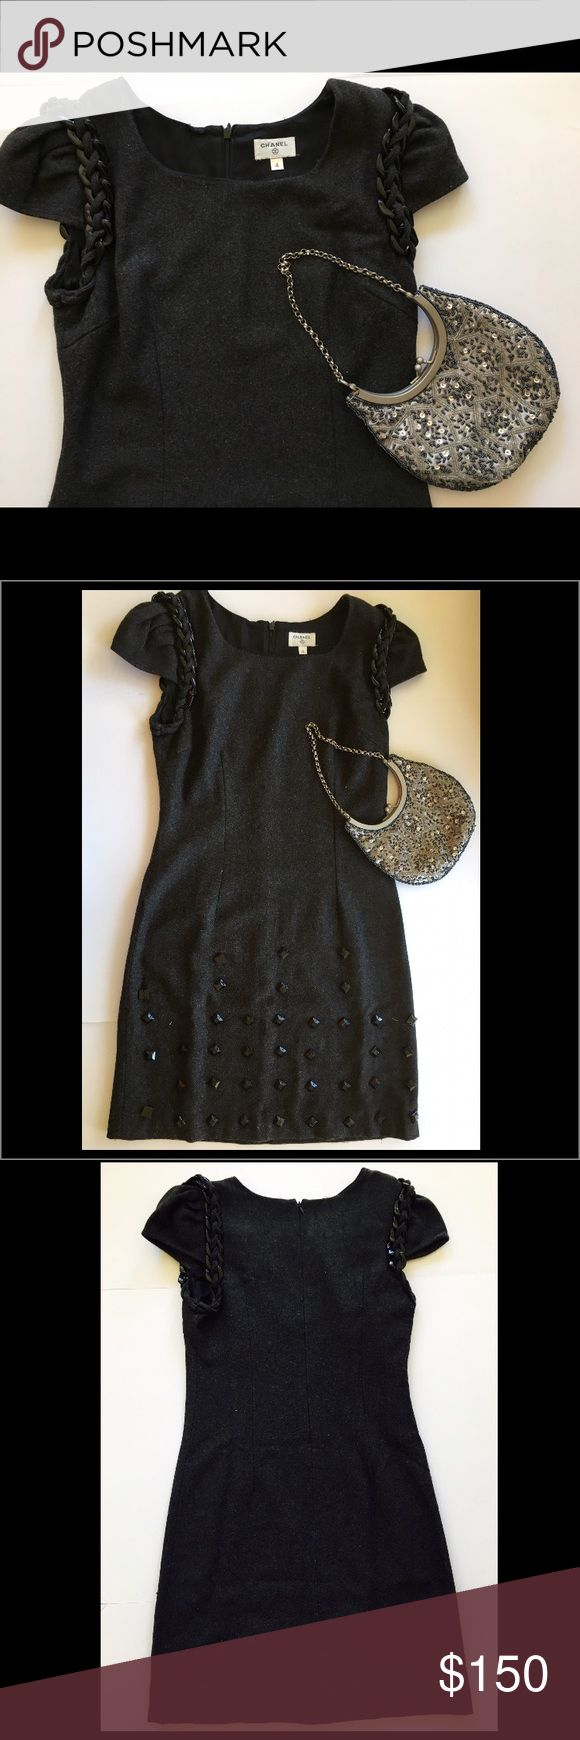 The dress is chanel - Vintage Chanel 90th Wool Dress Size 4